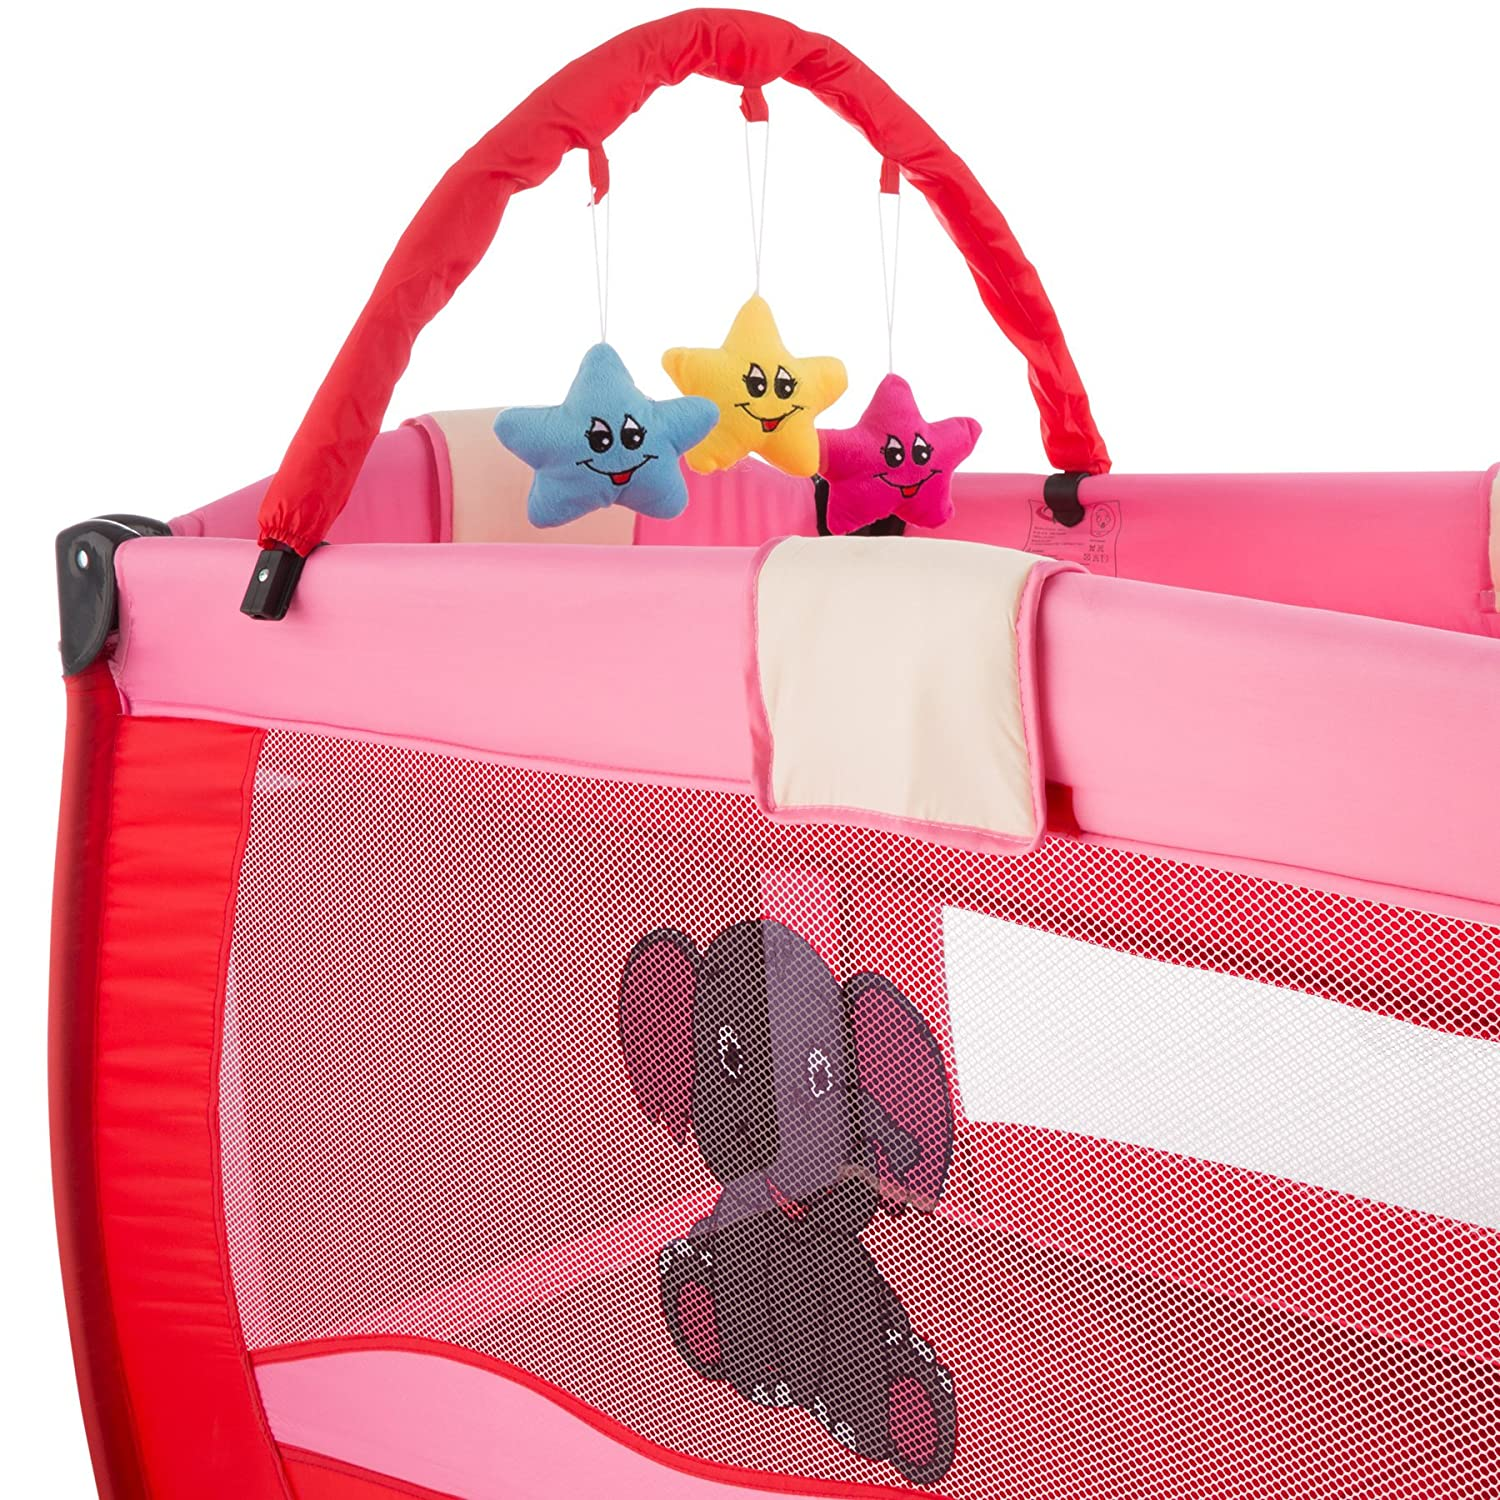 TecTake Portable Child Baby Travel Cot Bed Playpen with Entryway and Toys New